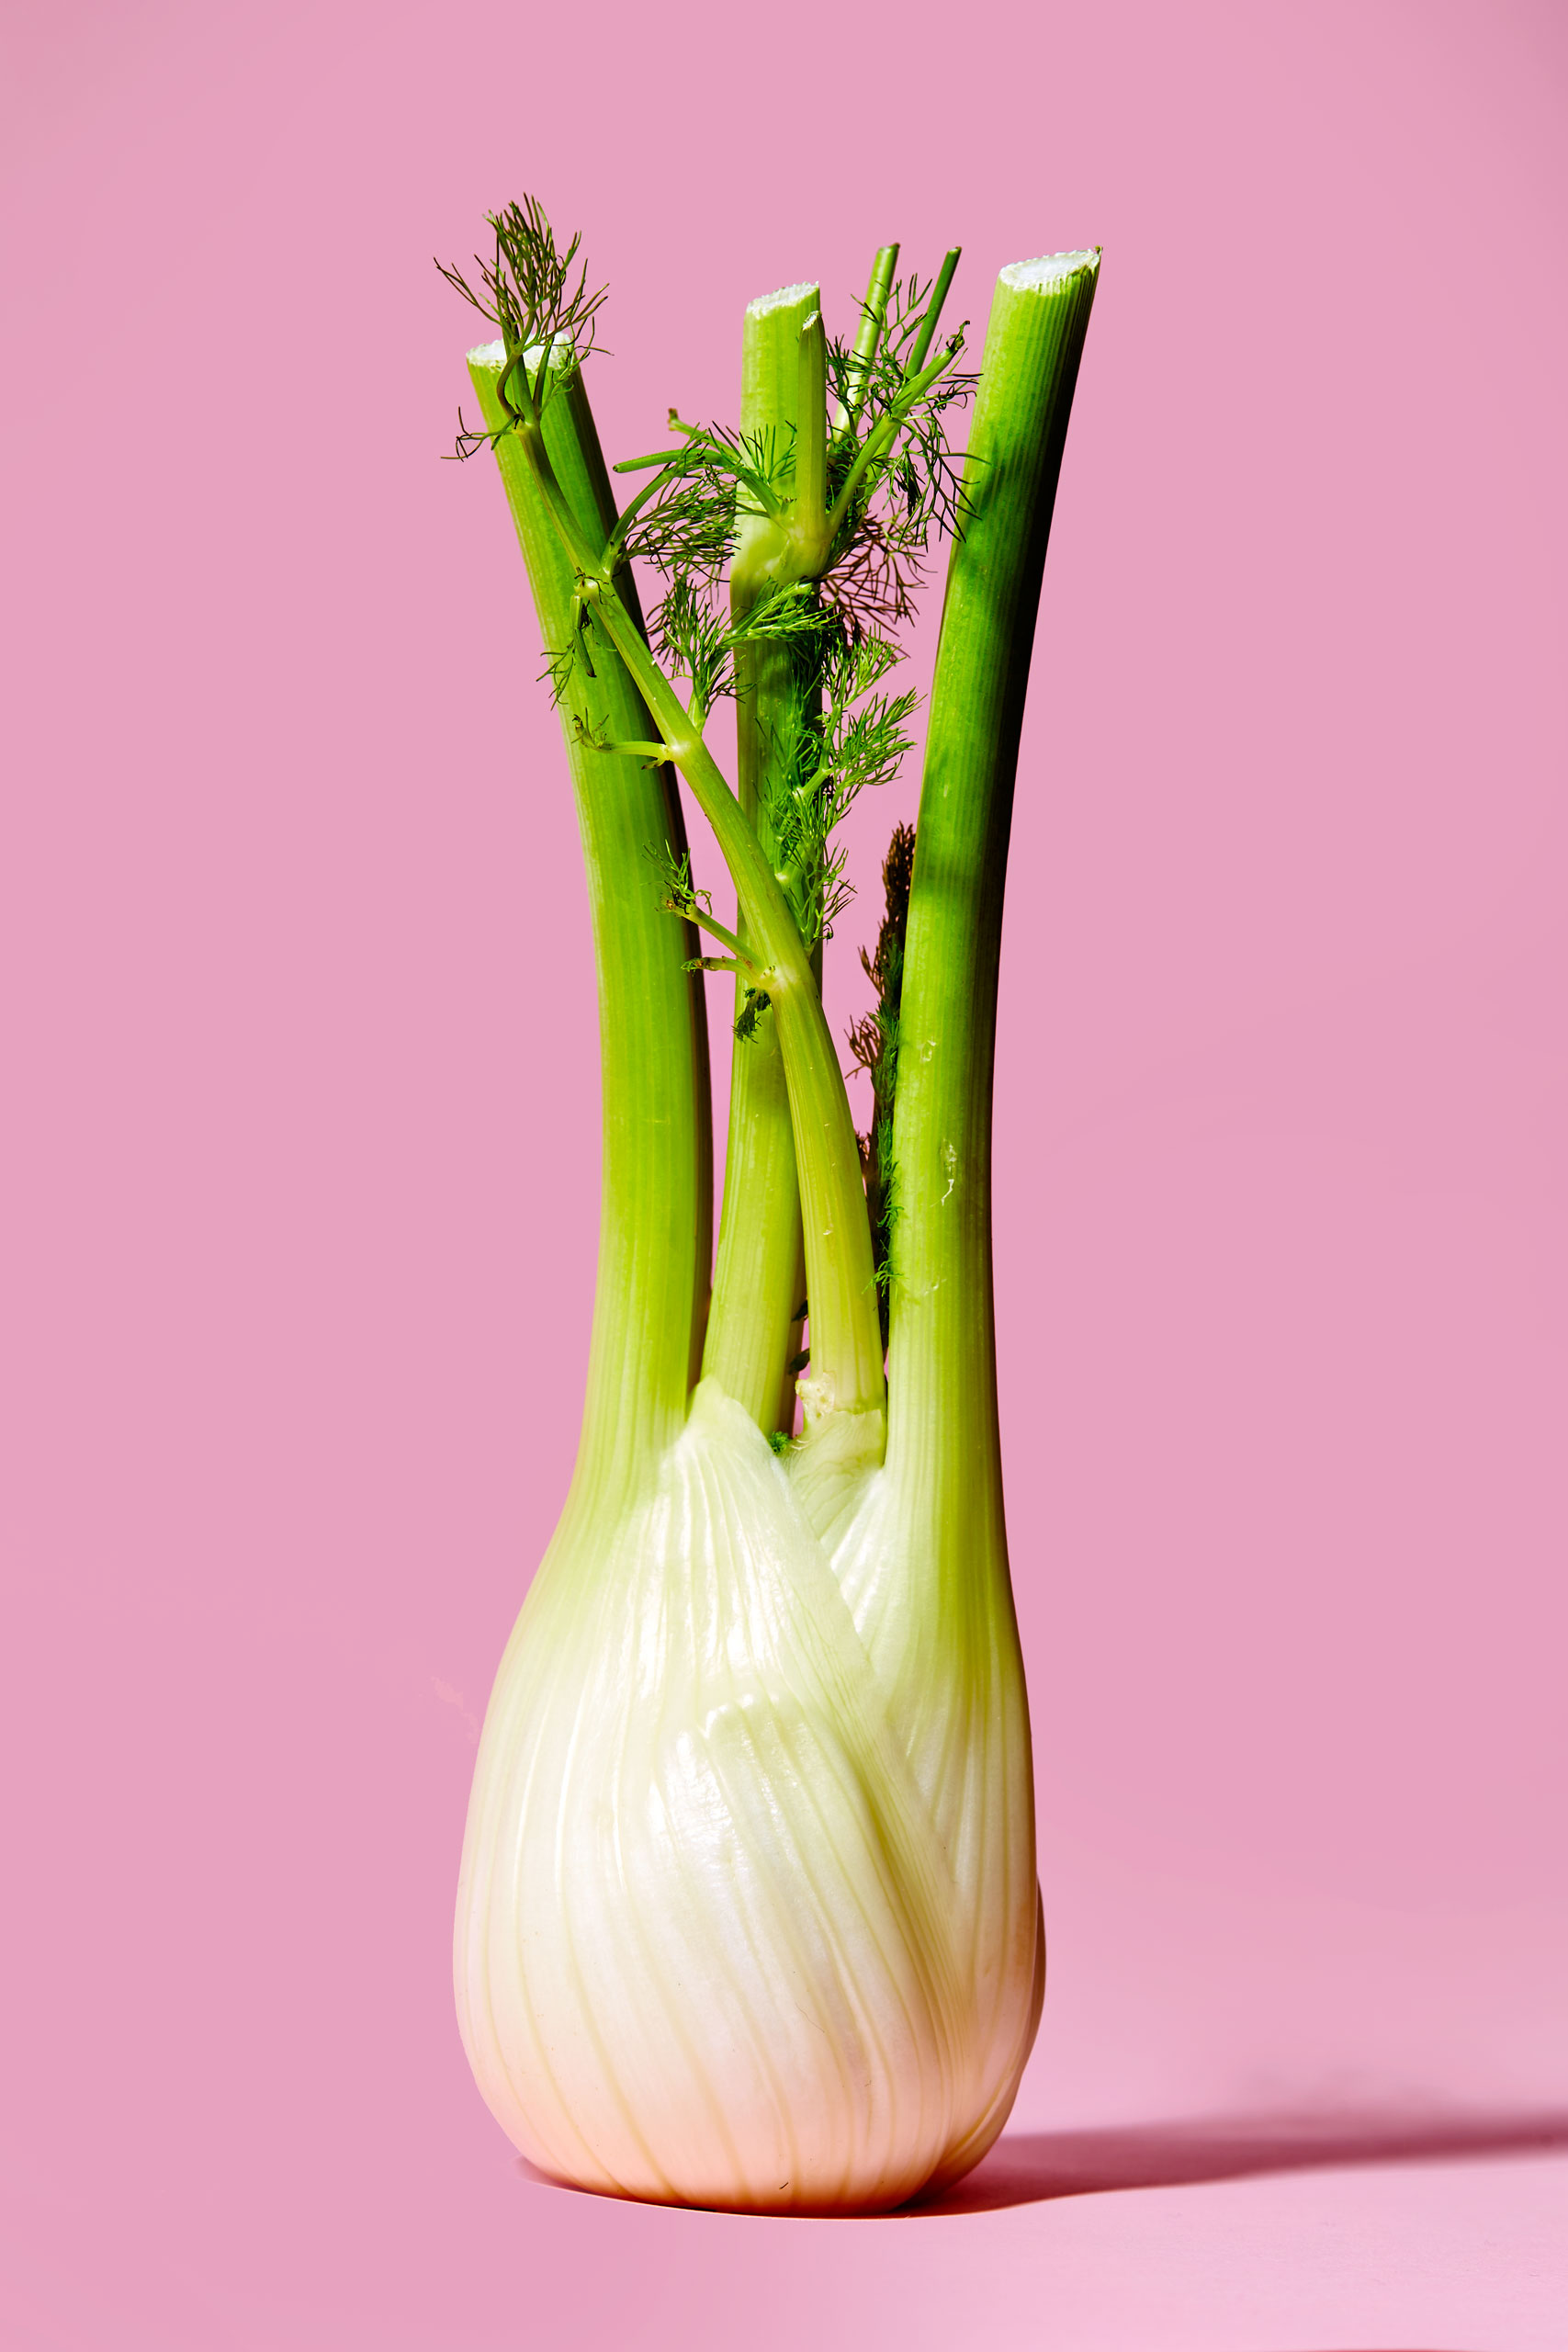 healthiest foods, health food, diet, nutrition, time.com stock, fennel, vegetables